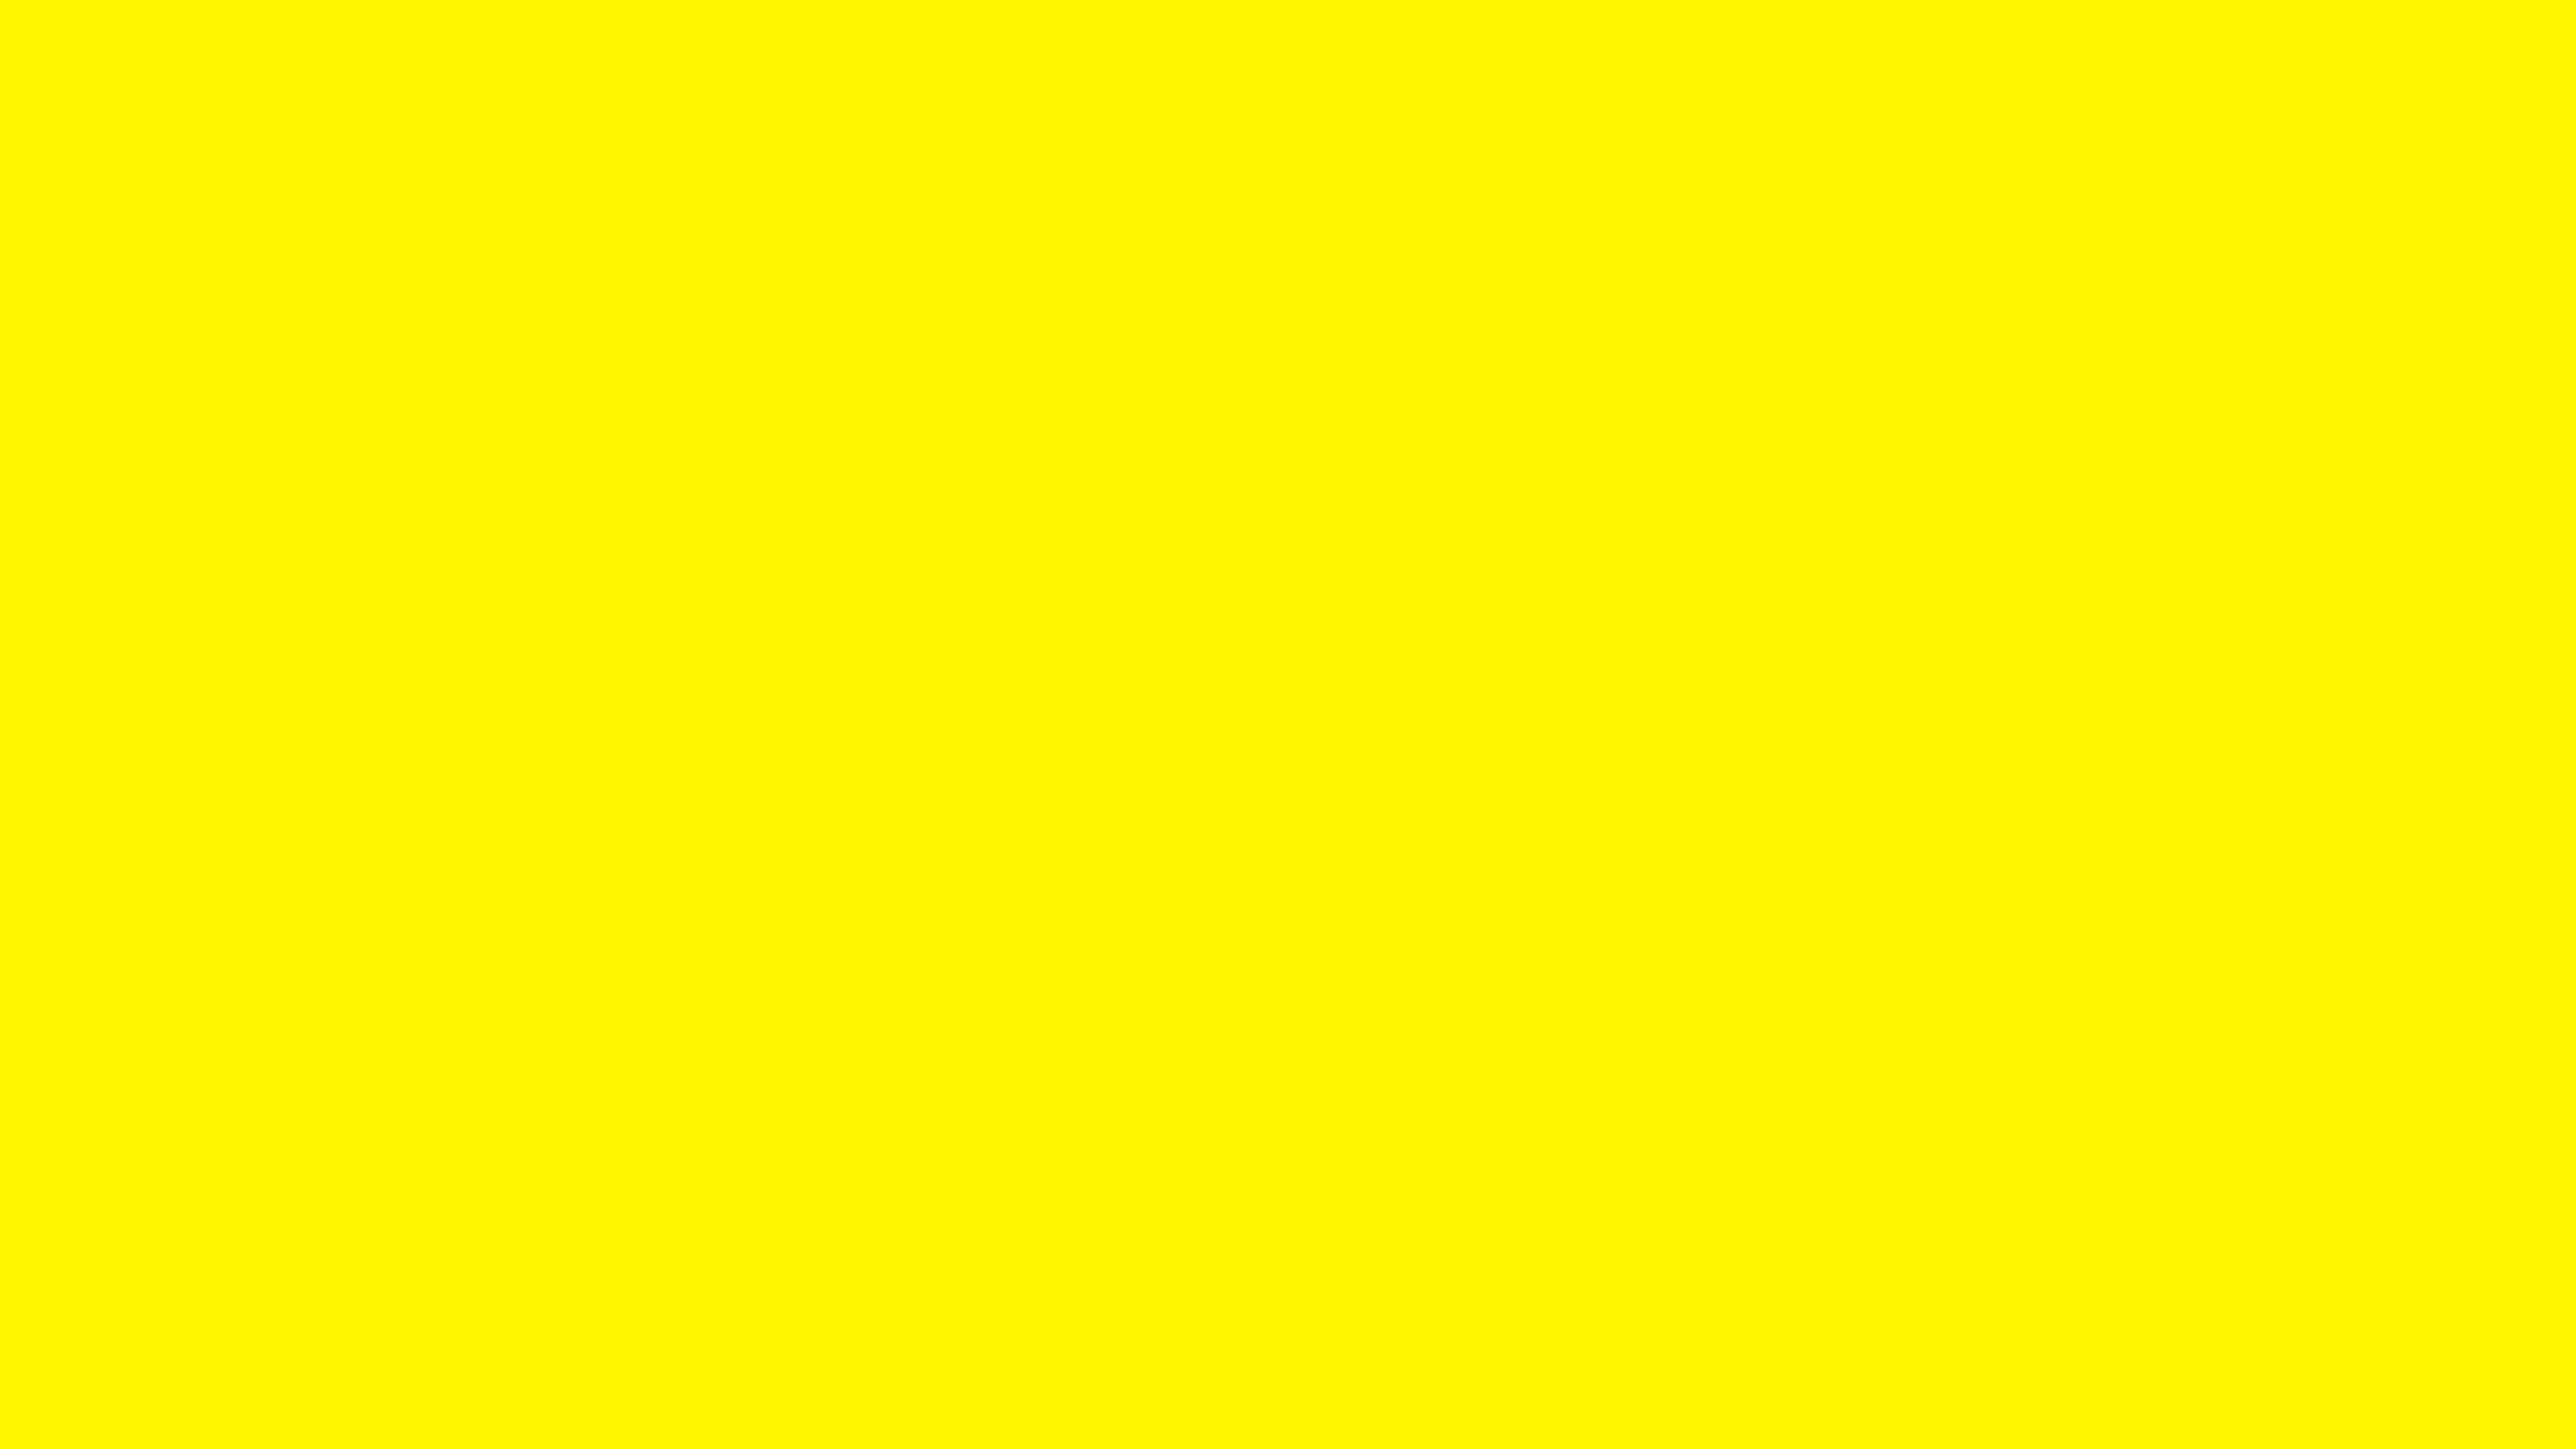 3840x2160 Cadmium Yellow Solid Color Background